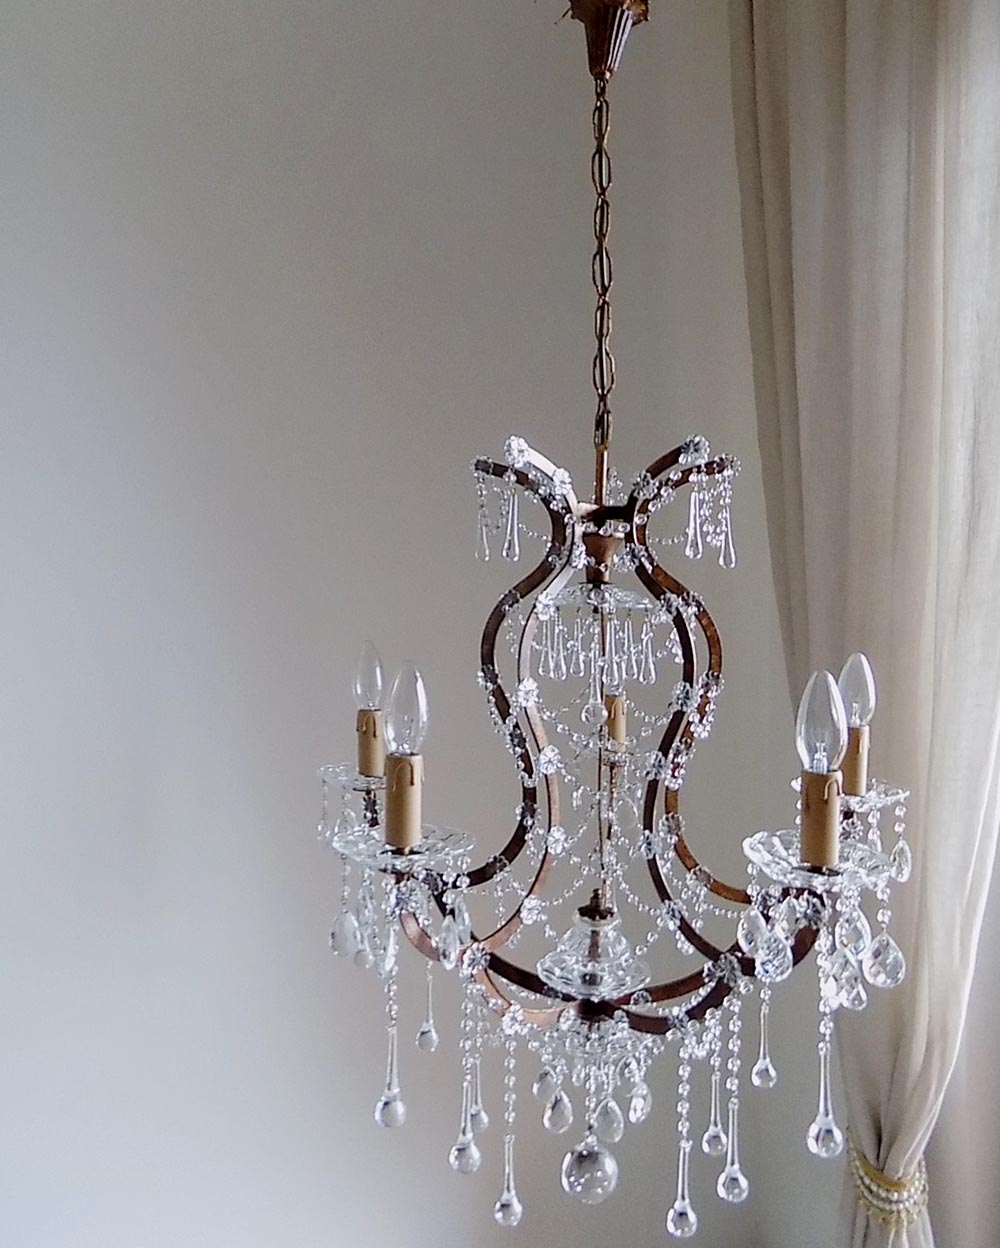 Vintage Birdcage Chandelier Murano Glass And Swags